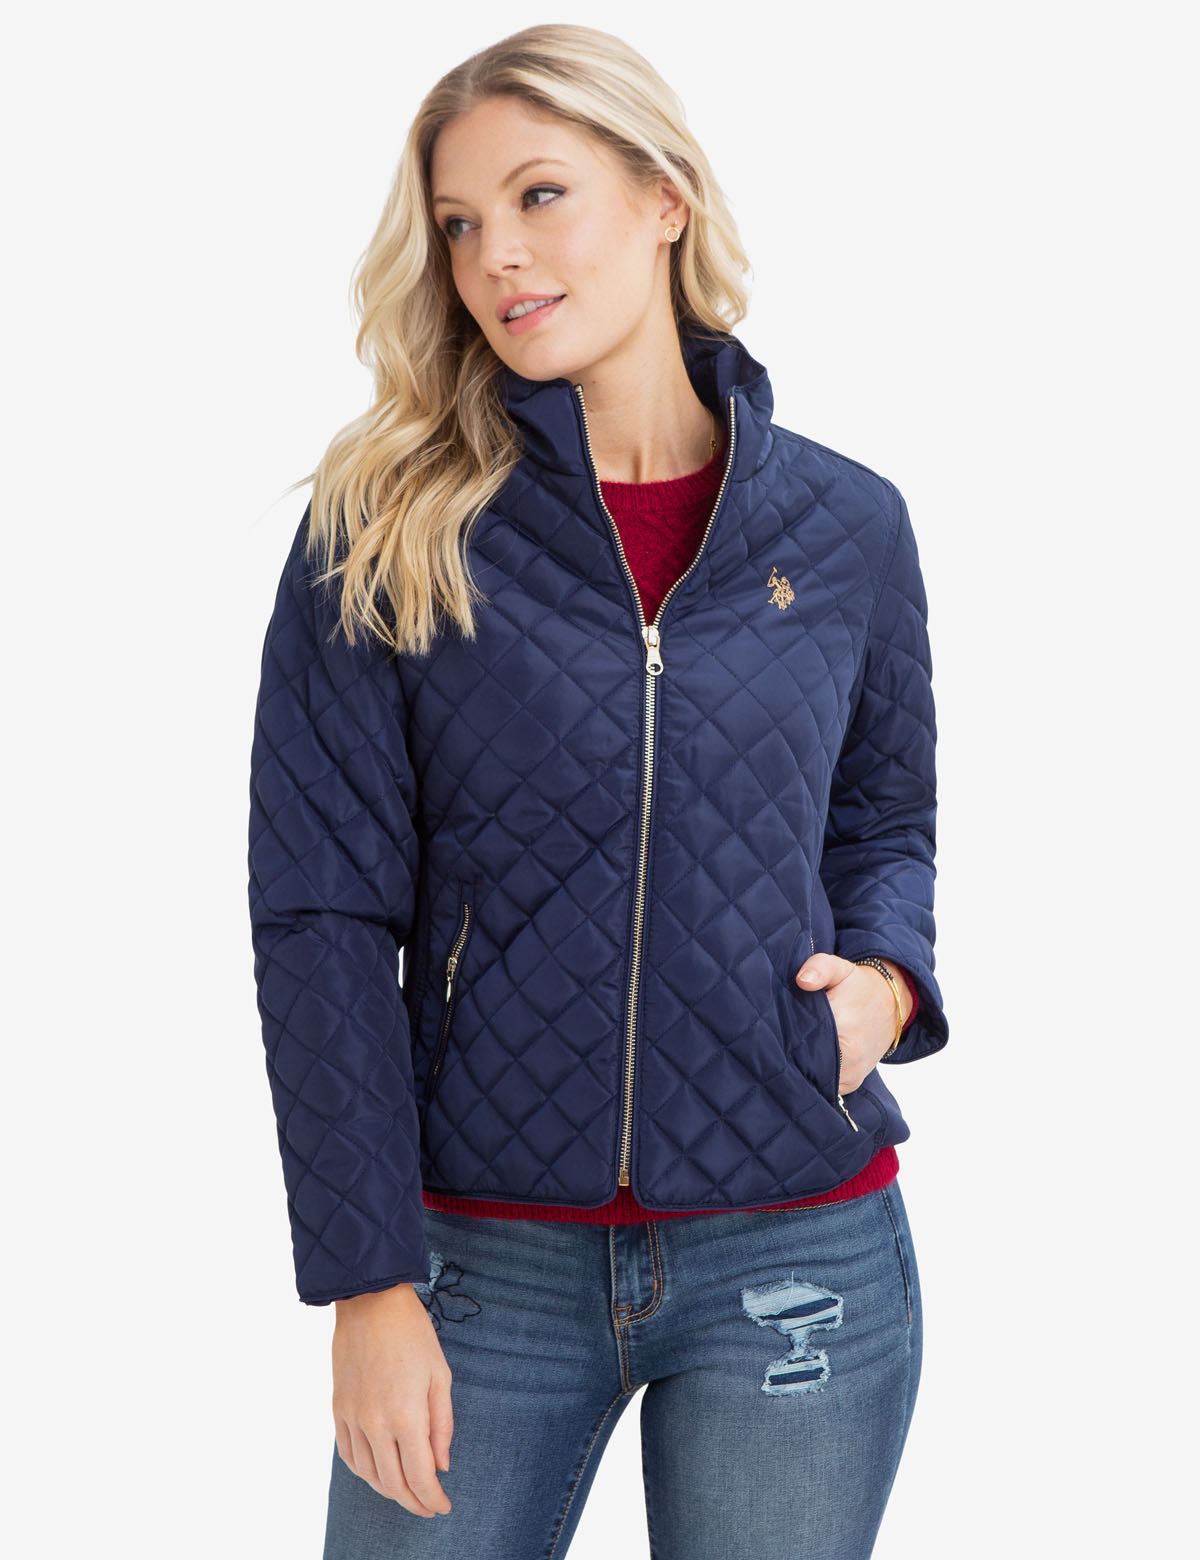 DIAMOND QUILTED SIDE KNIT JACKET